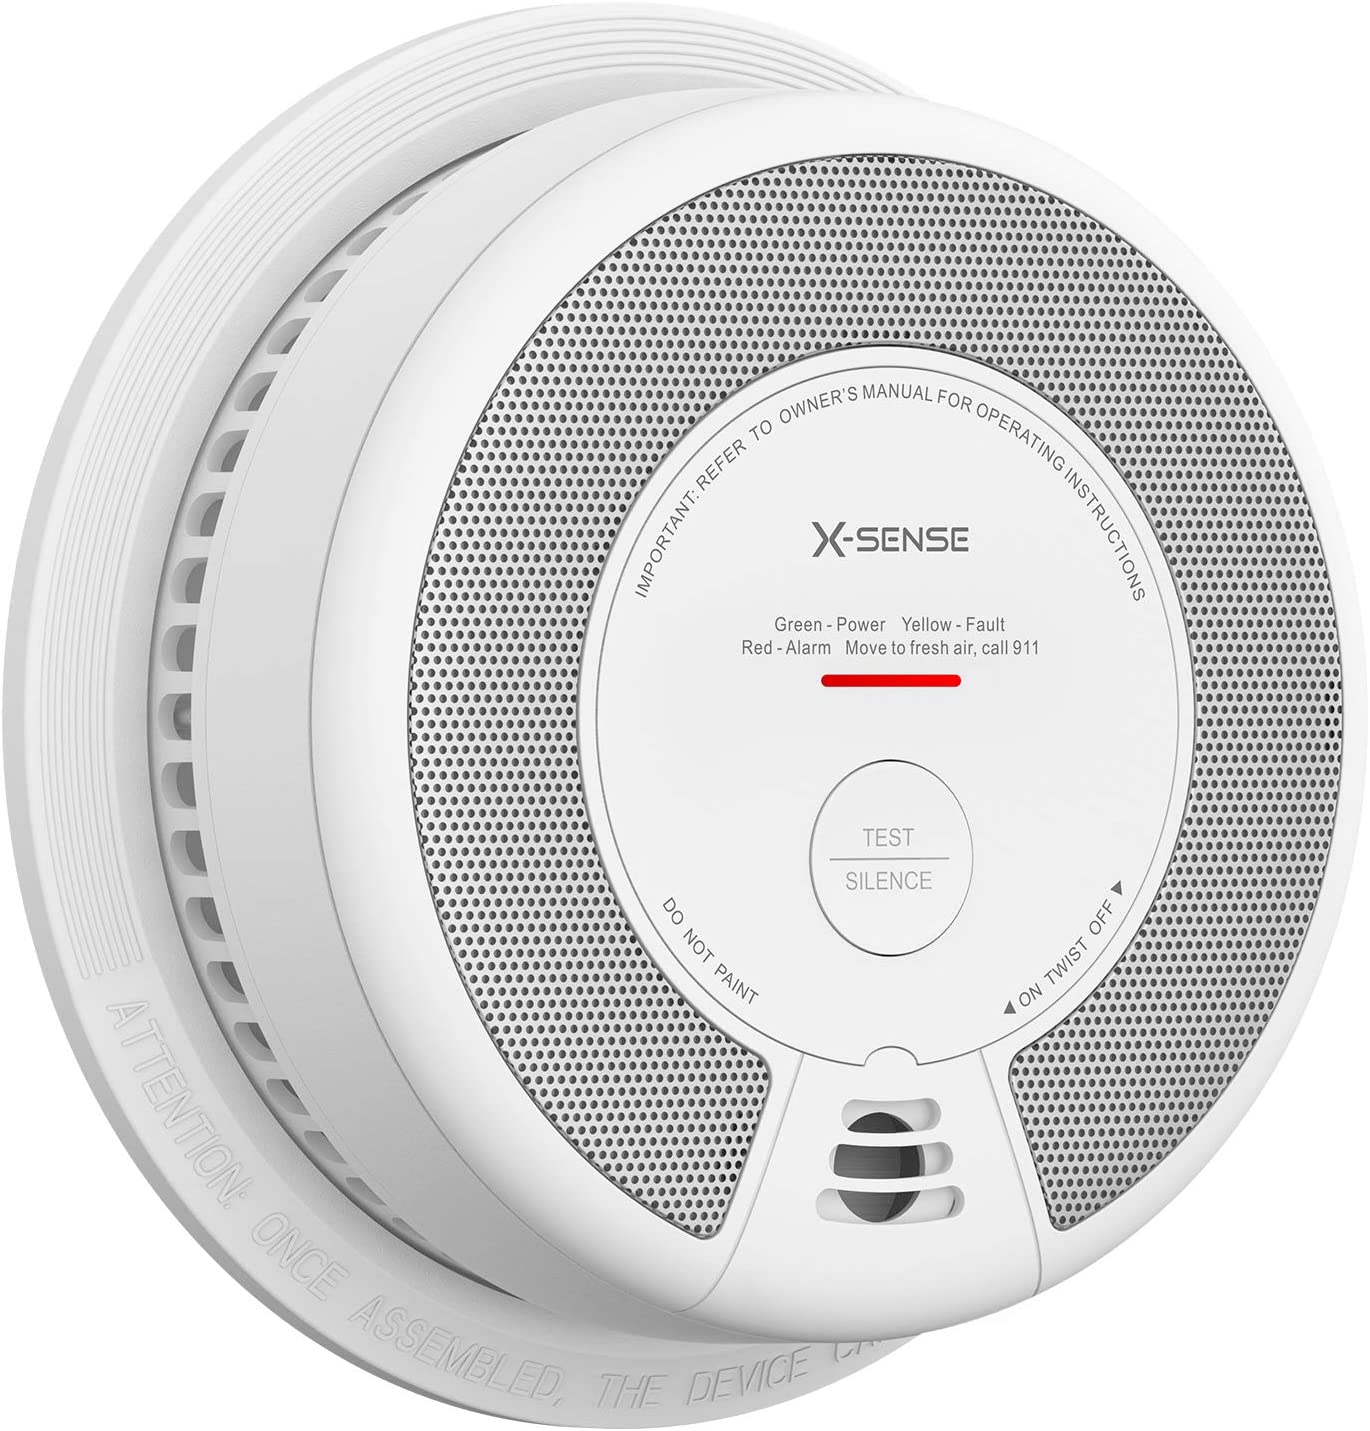 X-Sense Smoke Detector Alarm, 10-Year Battery-Operated Smoke and Fire Alarm with Photoelectric Sensor and Silence Button, Compliant with UL 217 Standard, SD06